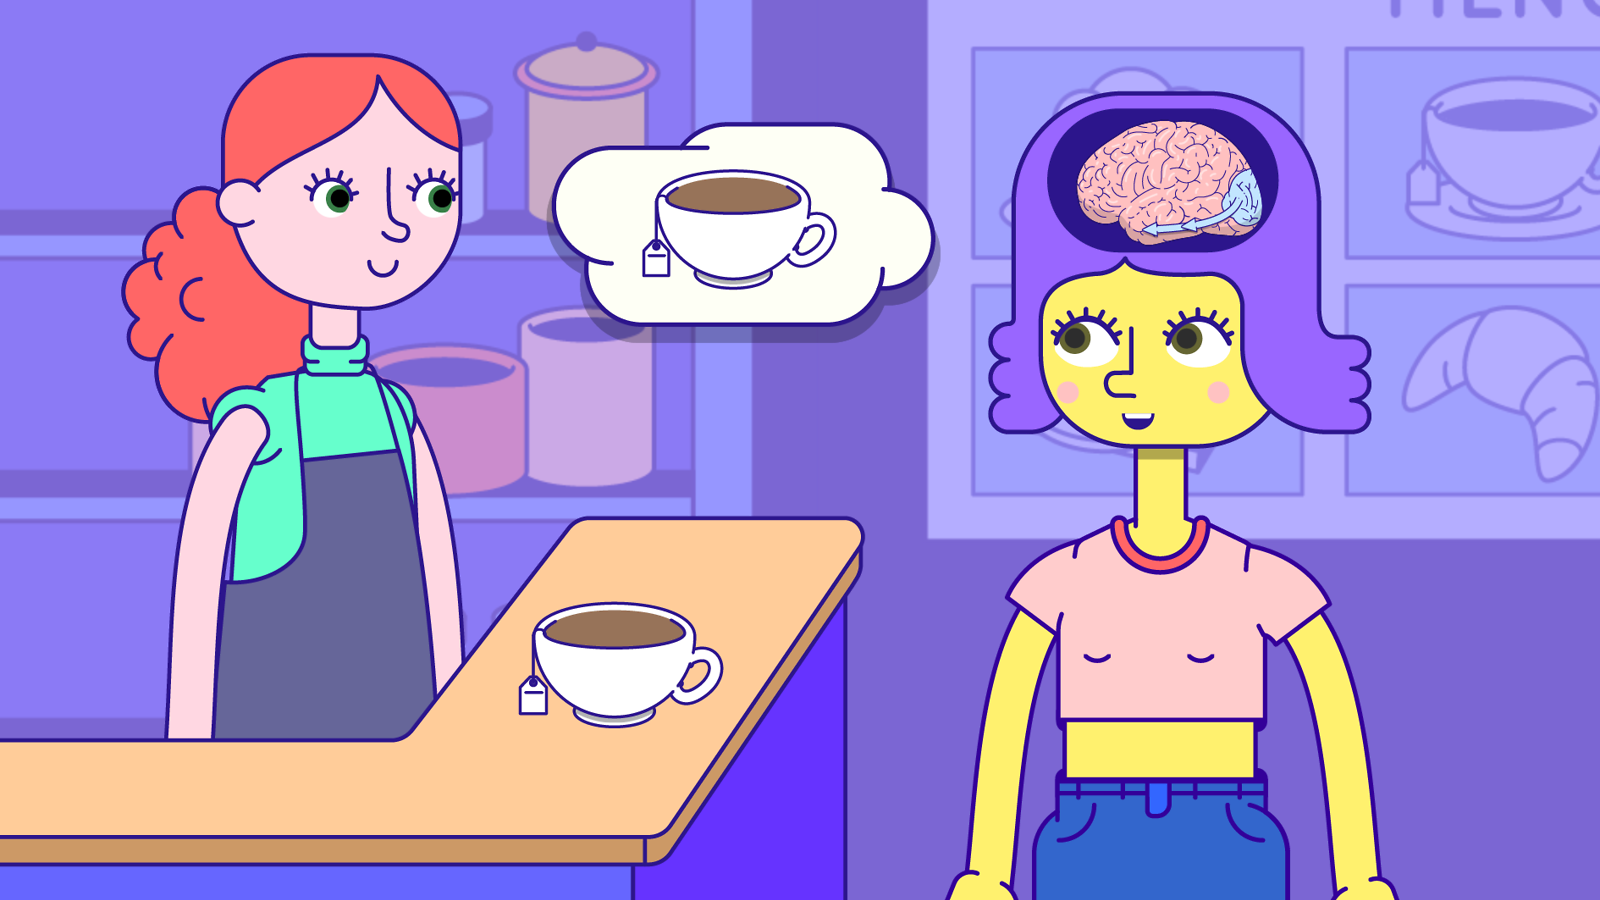 Illustration of cartoon, a thought bubble between a barista and a customer contains a cup of coffee